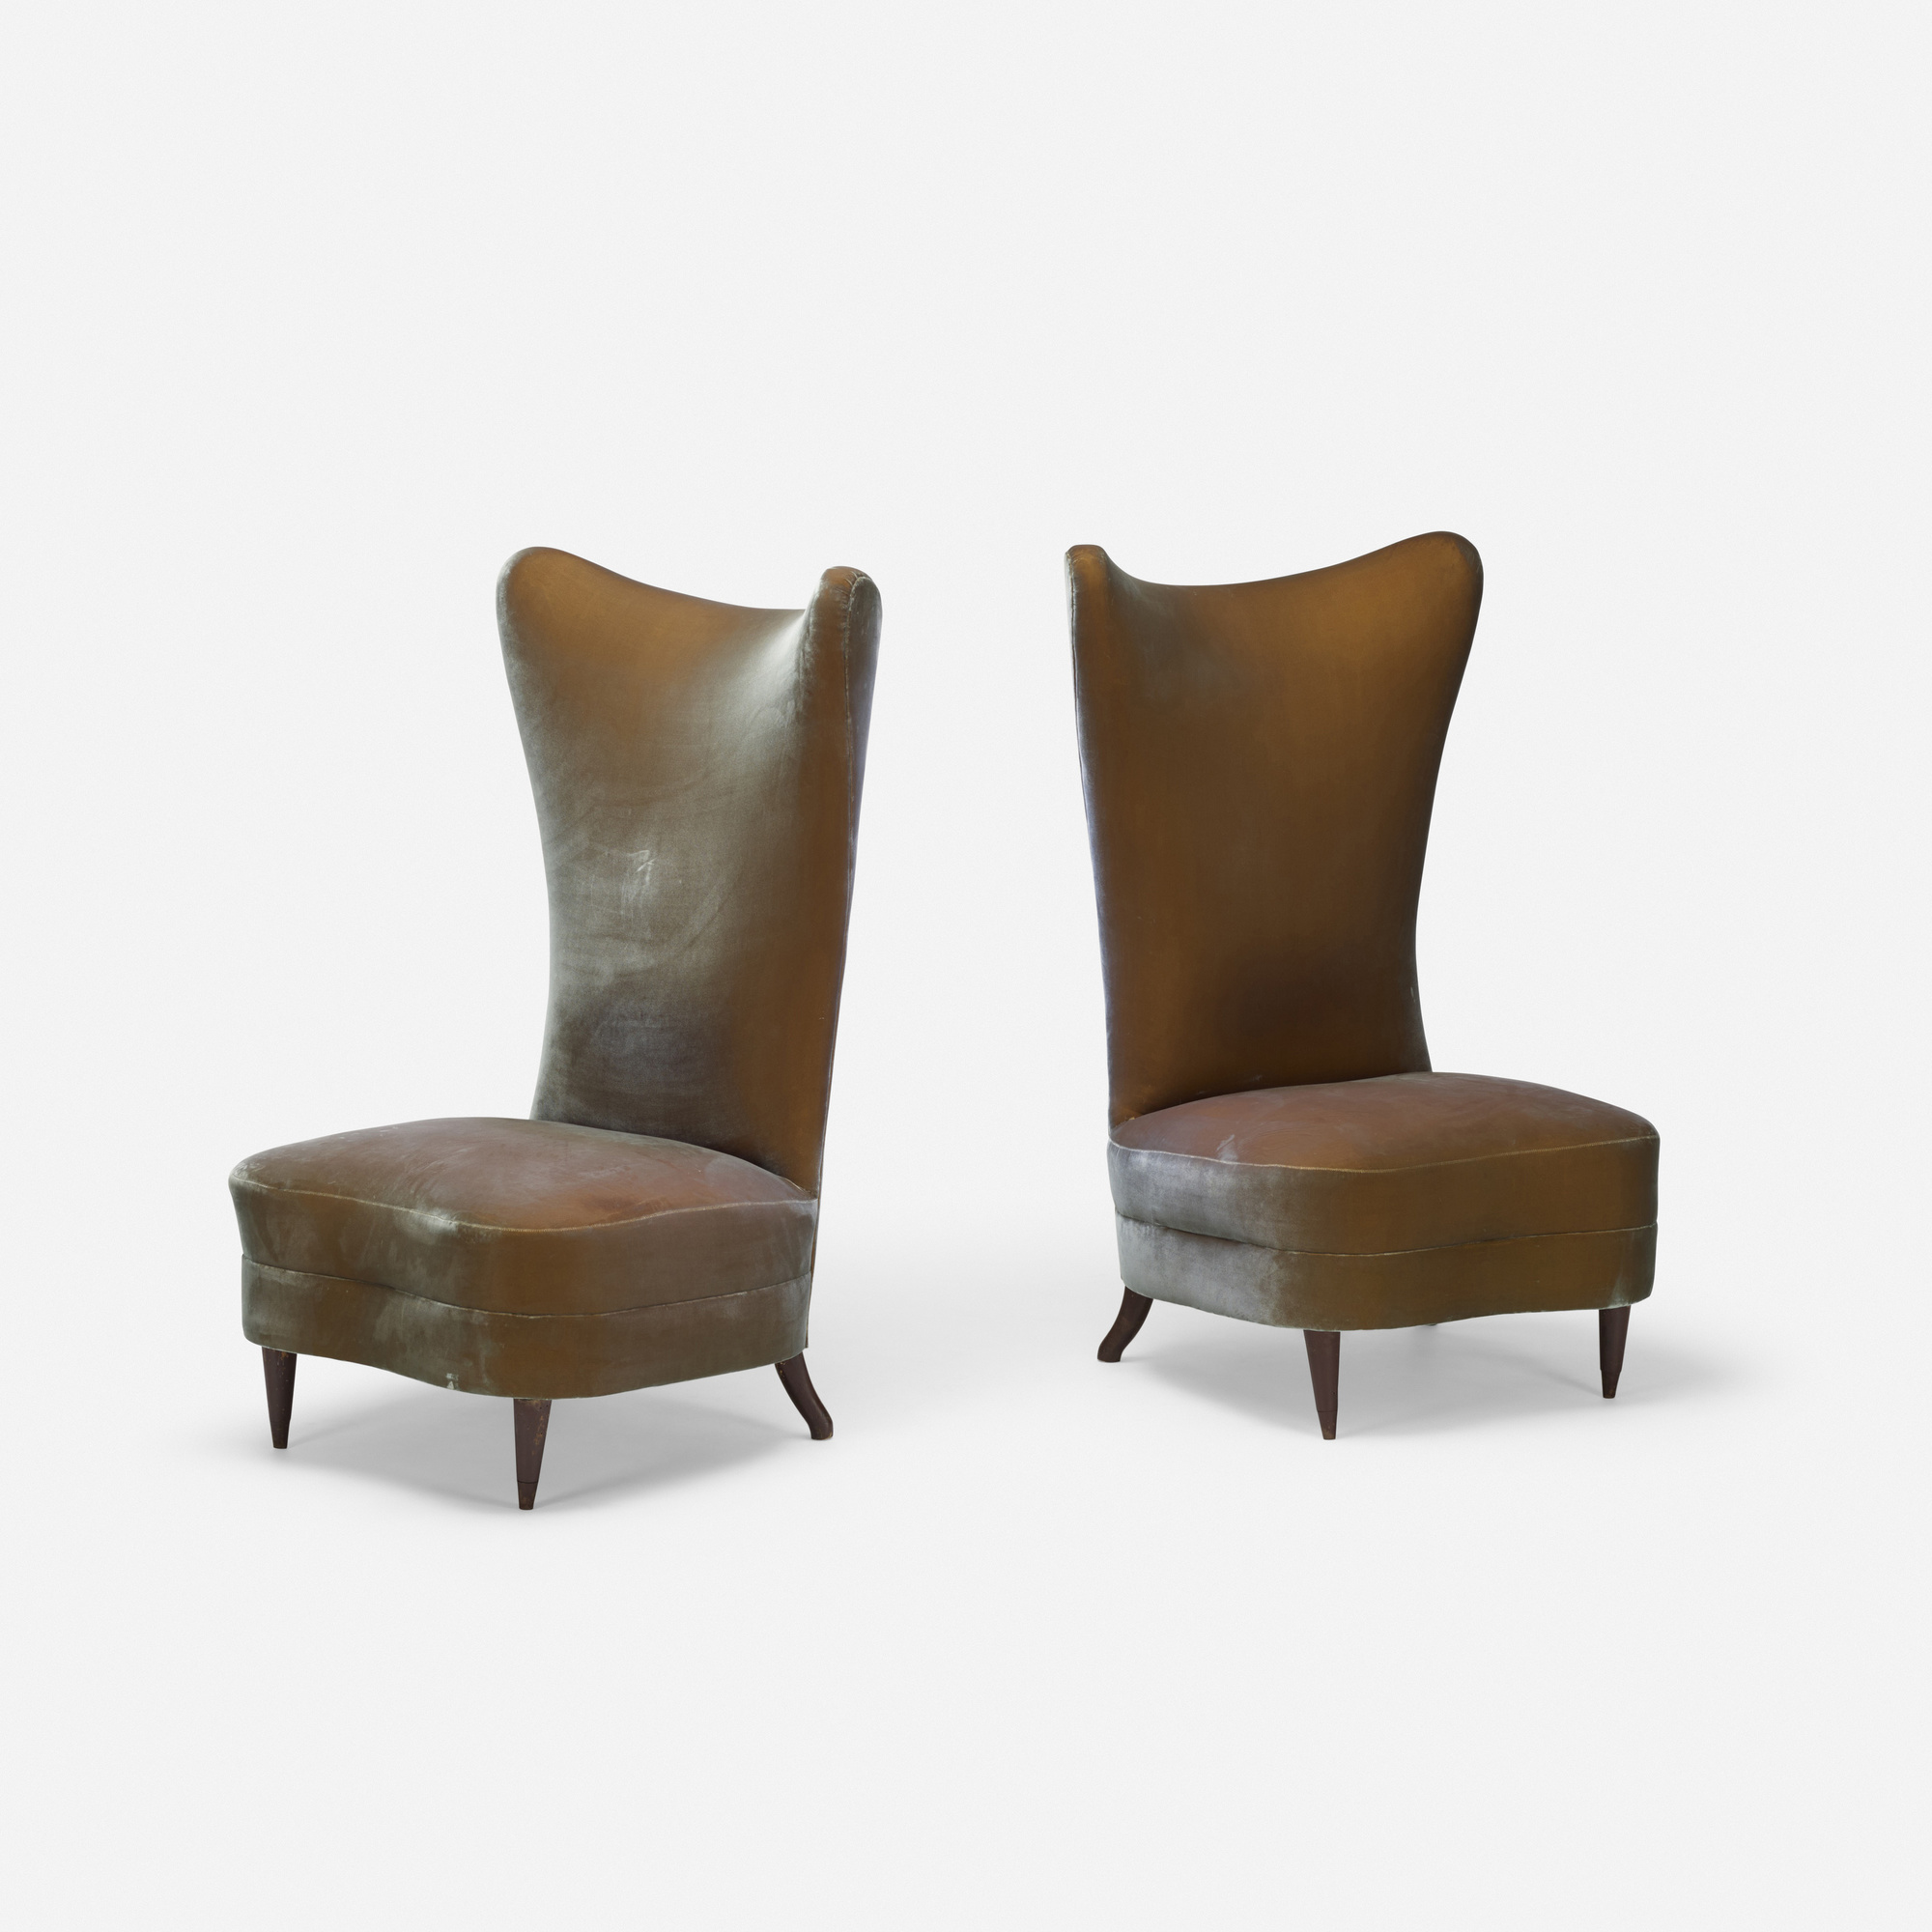 120: American / slipper chairs, pair (1 of 3)